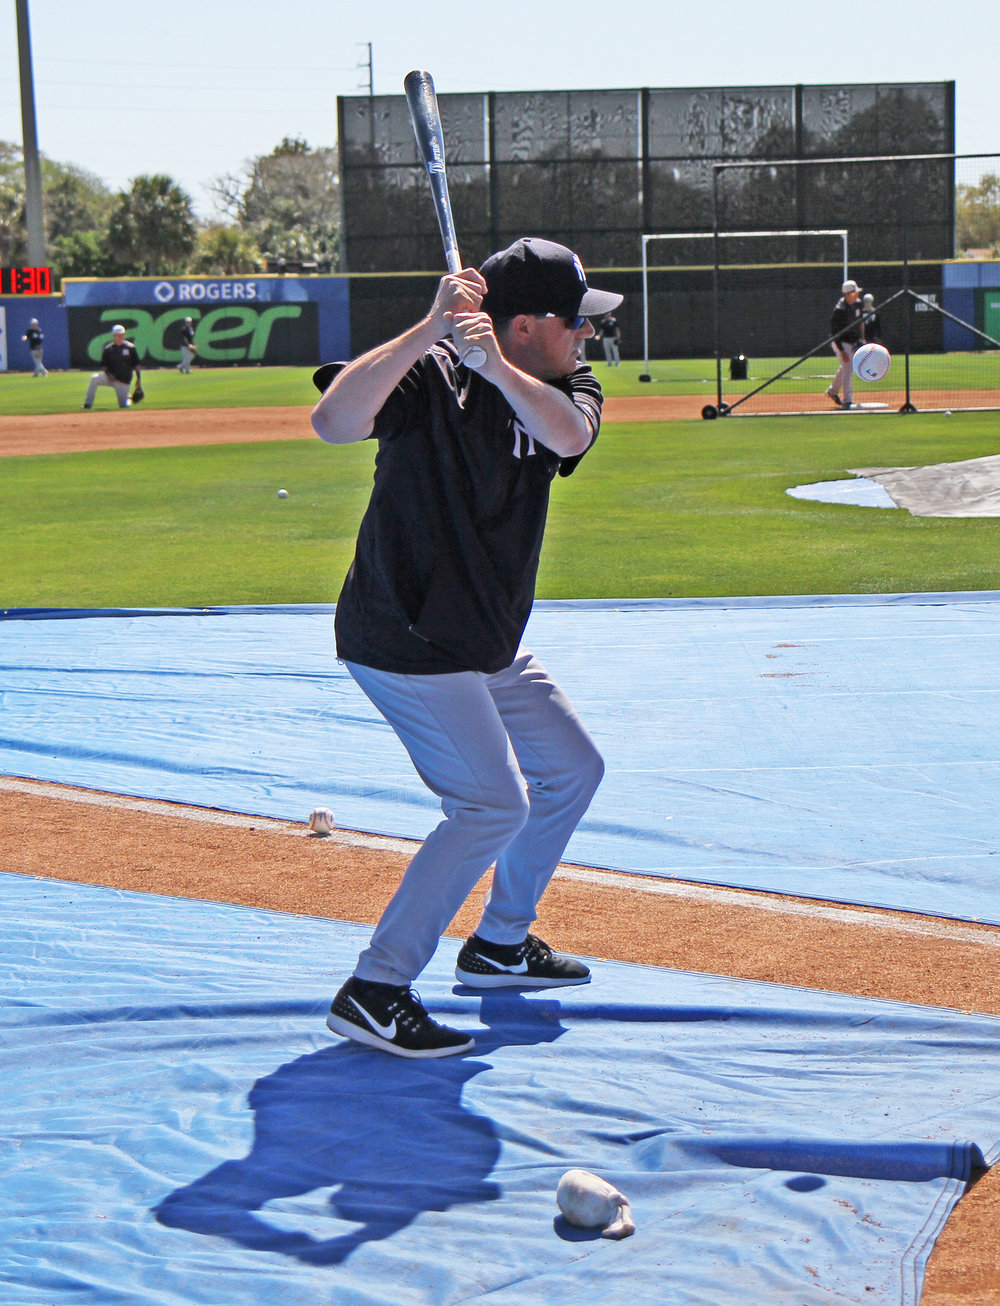 Prior to this spring training game in Dunedin, Fla., Thomson helped out by hitting grounders to Yankees infielders during batting practice. PHOTO: MATT ANTONACCI